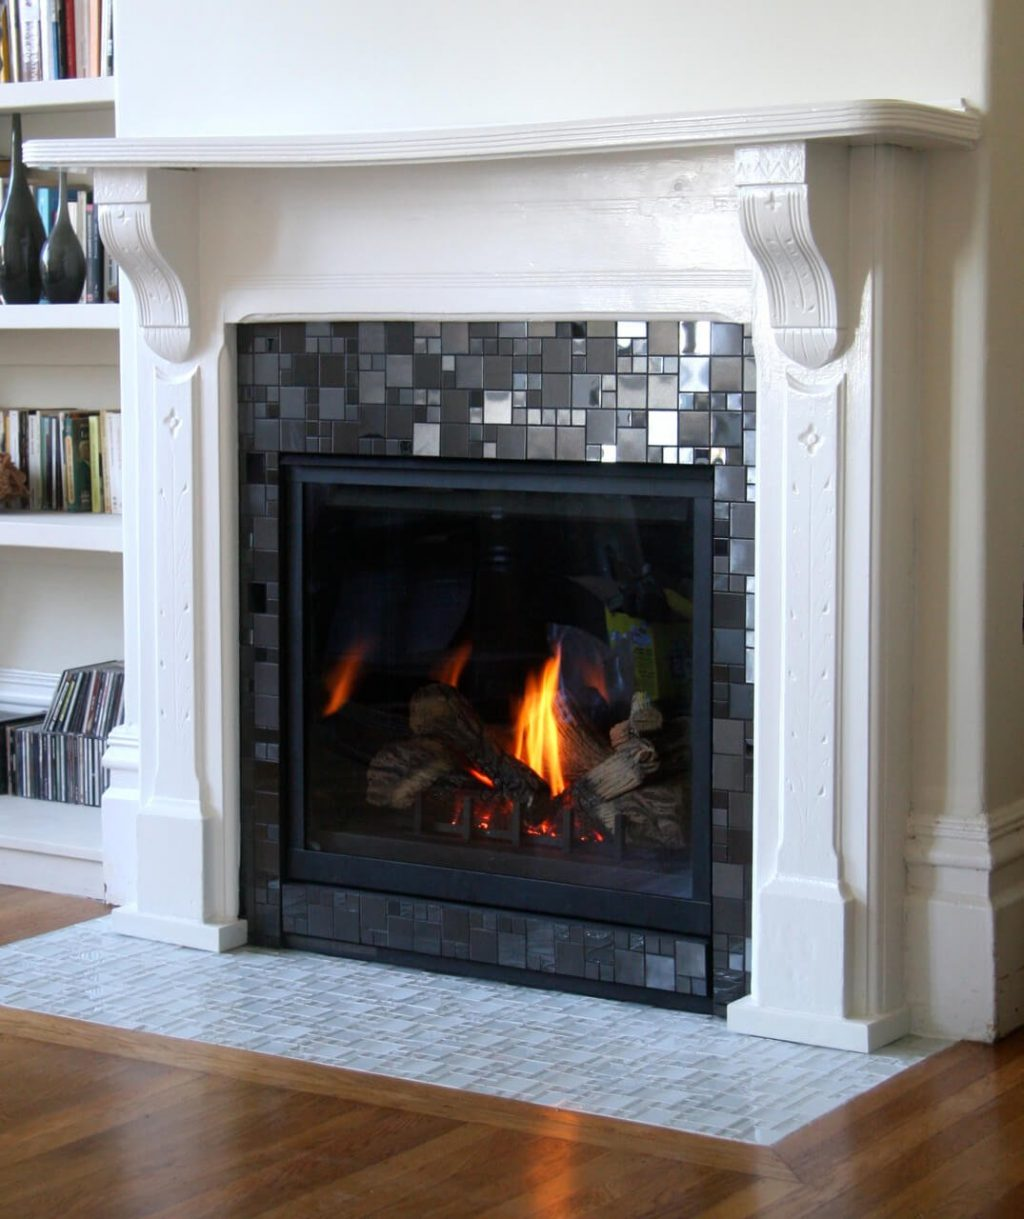 Merveilleux Glass Mosaic Fireplace Tiles